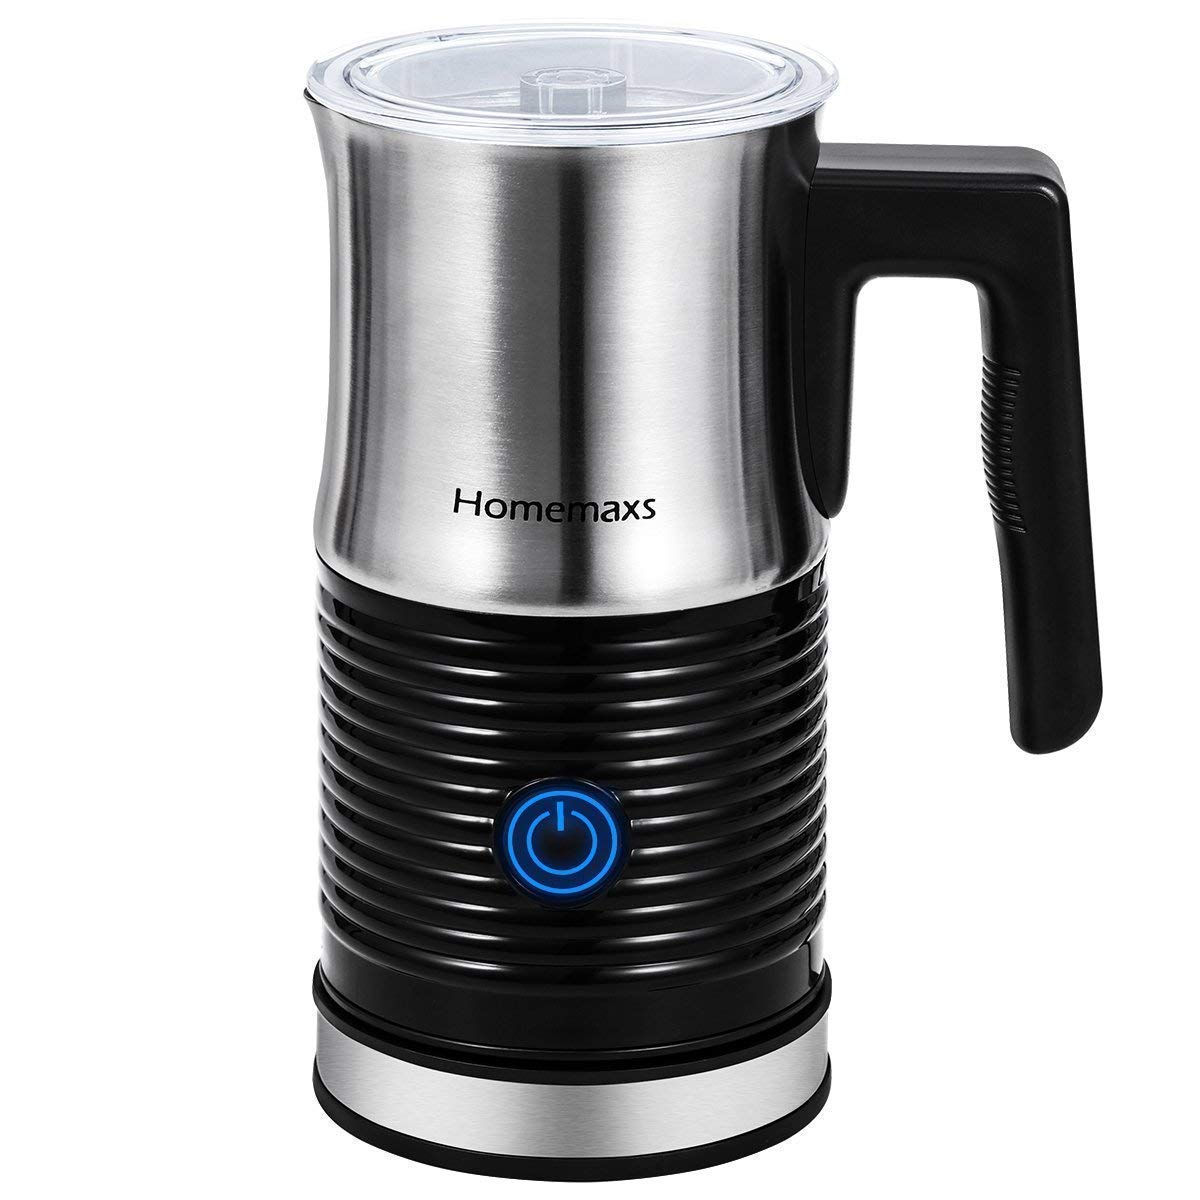 Milk Frother, Homemaxs Electric Milk Frother & Warmer with Hot or Cold Function, Anti-hot Base & Non-Stick Interior Perfect Foam for Coffee, Hot Chocolate, Cappuccino